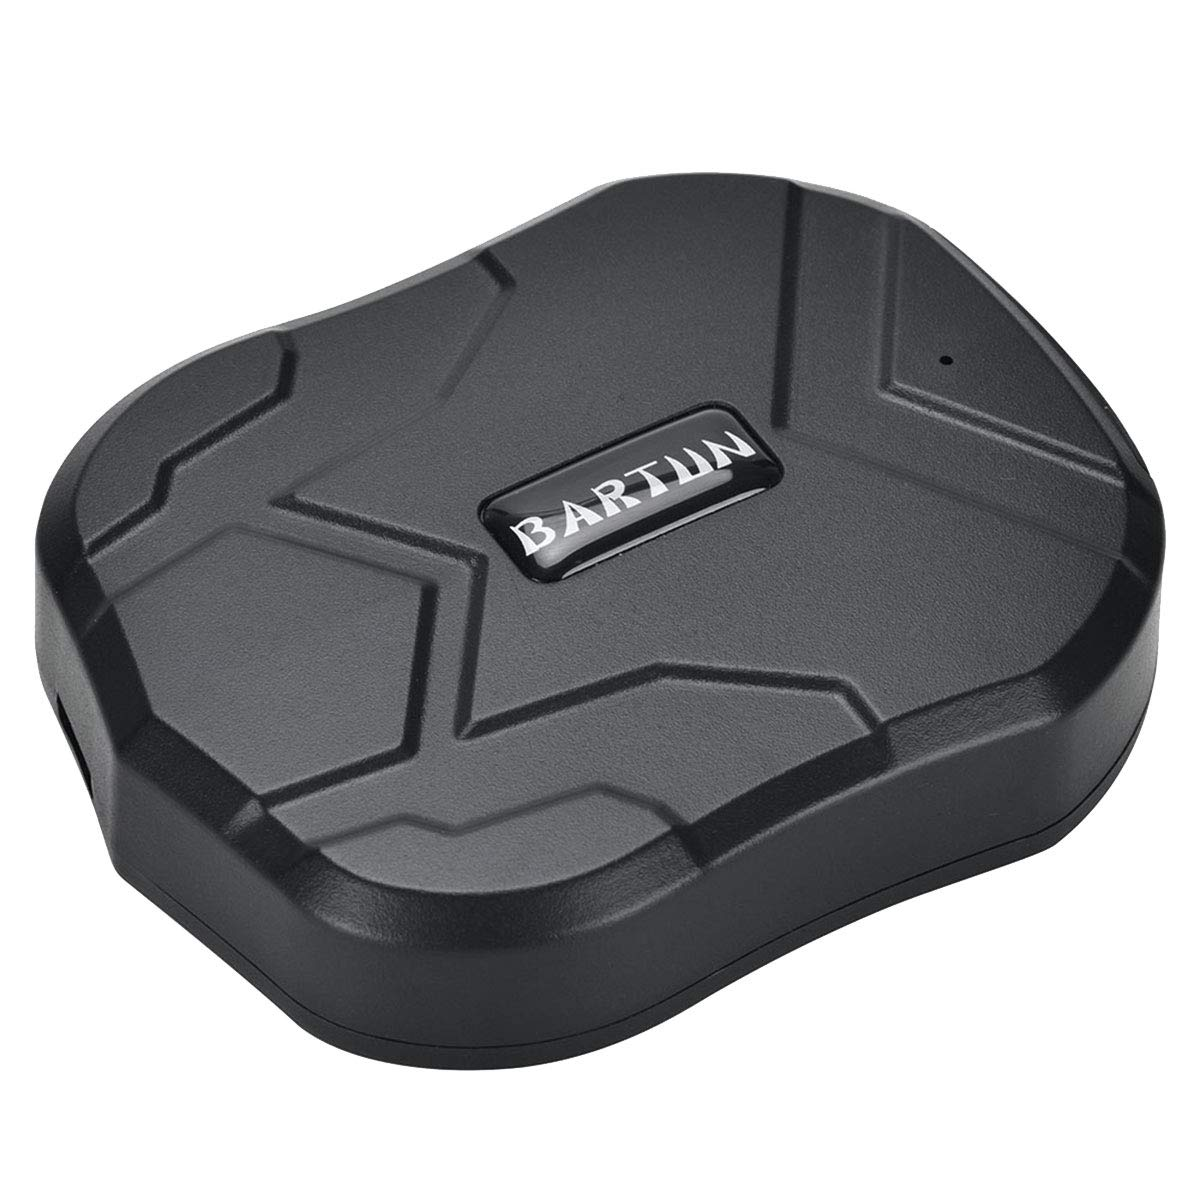 Gps & Guidance Equipment Agriculture & Forestry Live Gps Tracker With 2 Month Battery Water Resistant Online Discount